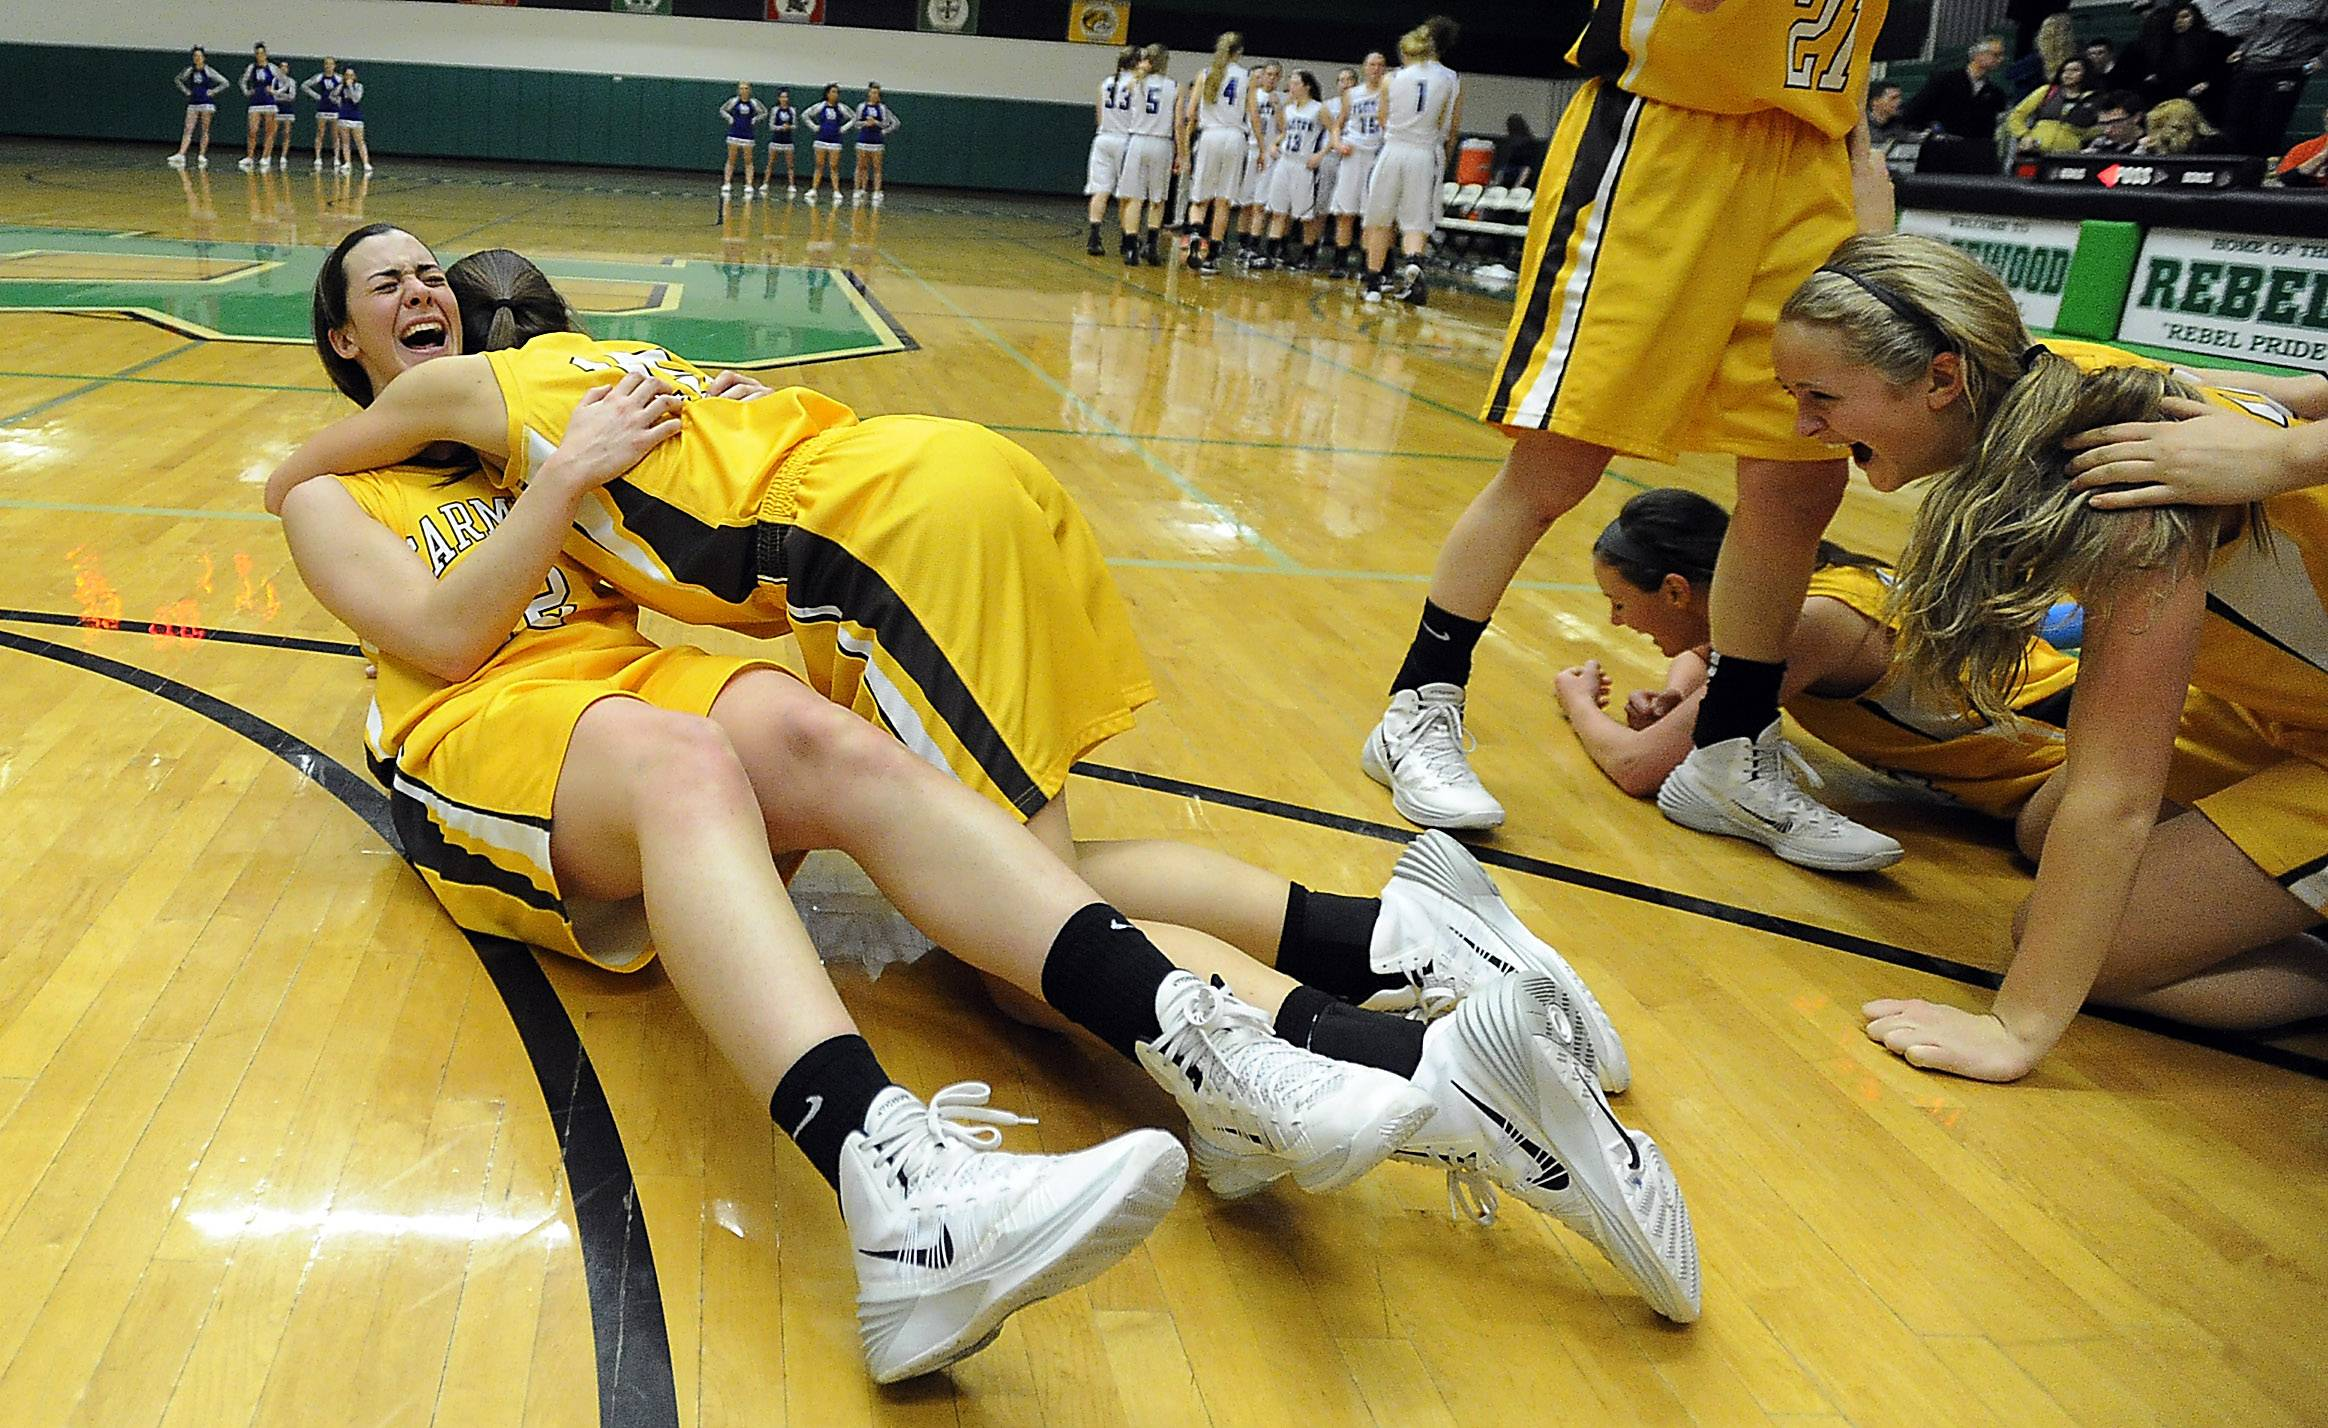 Carmel Catholic's Kathleen Fellcelli (12) and Paige Gauthier (15) celebrate their victory over Vernon Hills in the Class 3A sectional final at Ridgewood High School on Thursday.